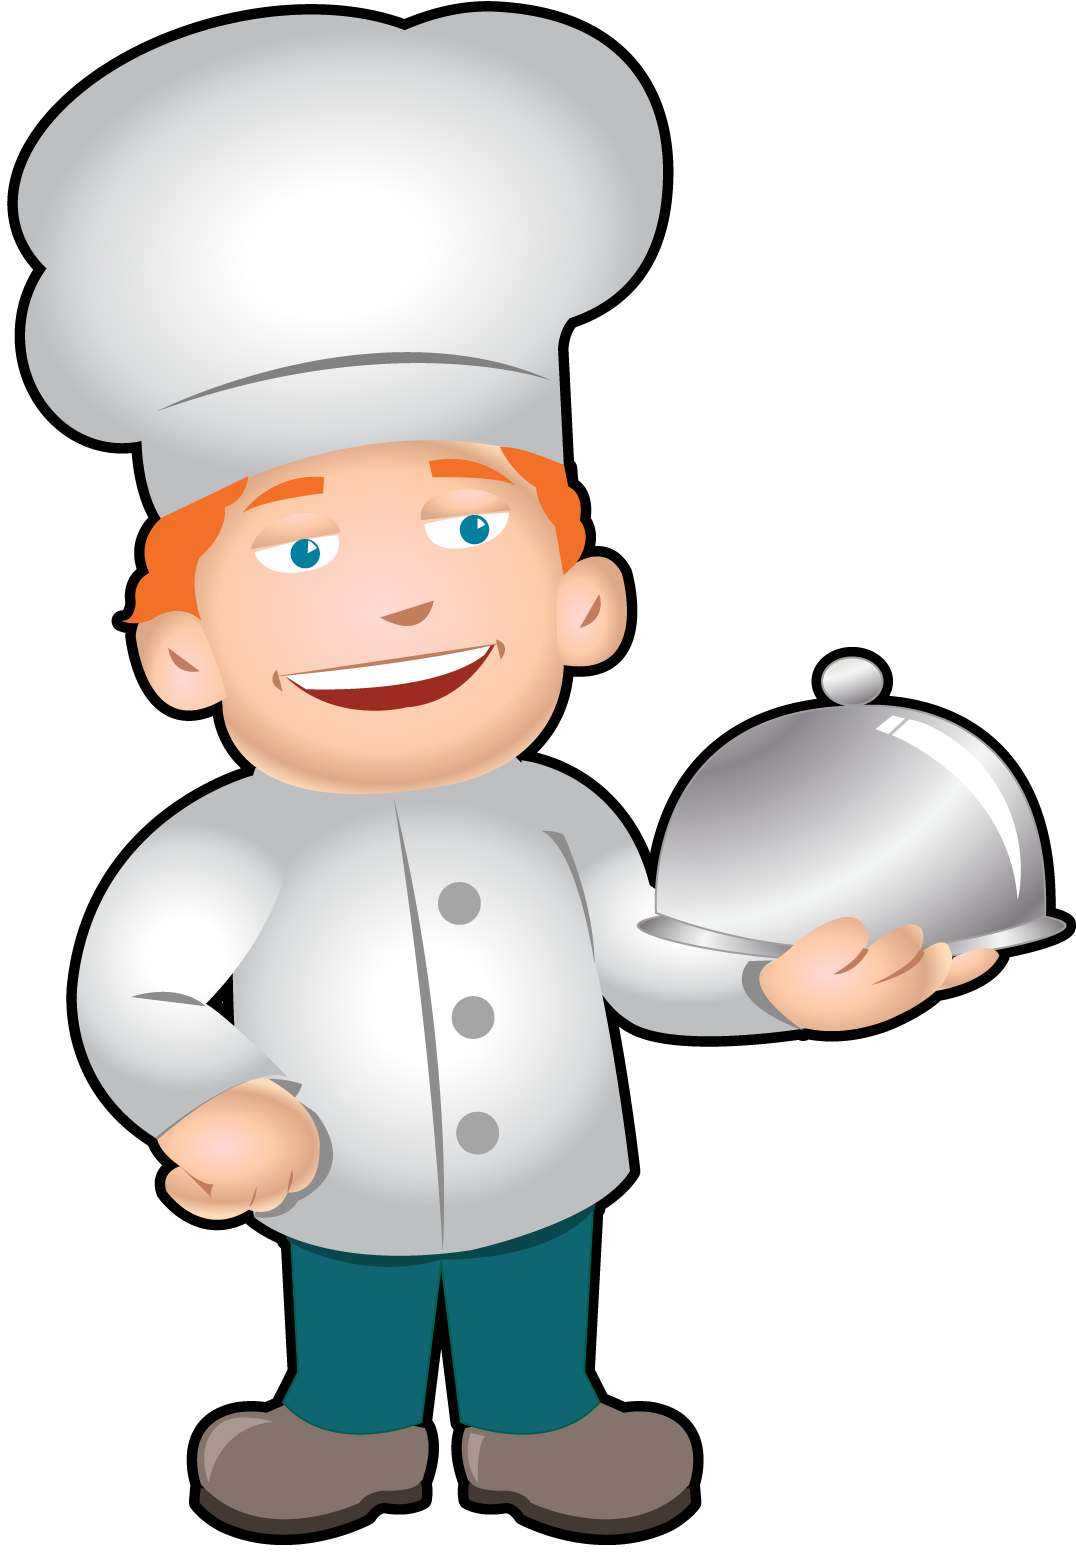 Free indian cliparts download. Catering clipart pizza chef picture